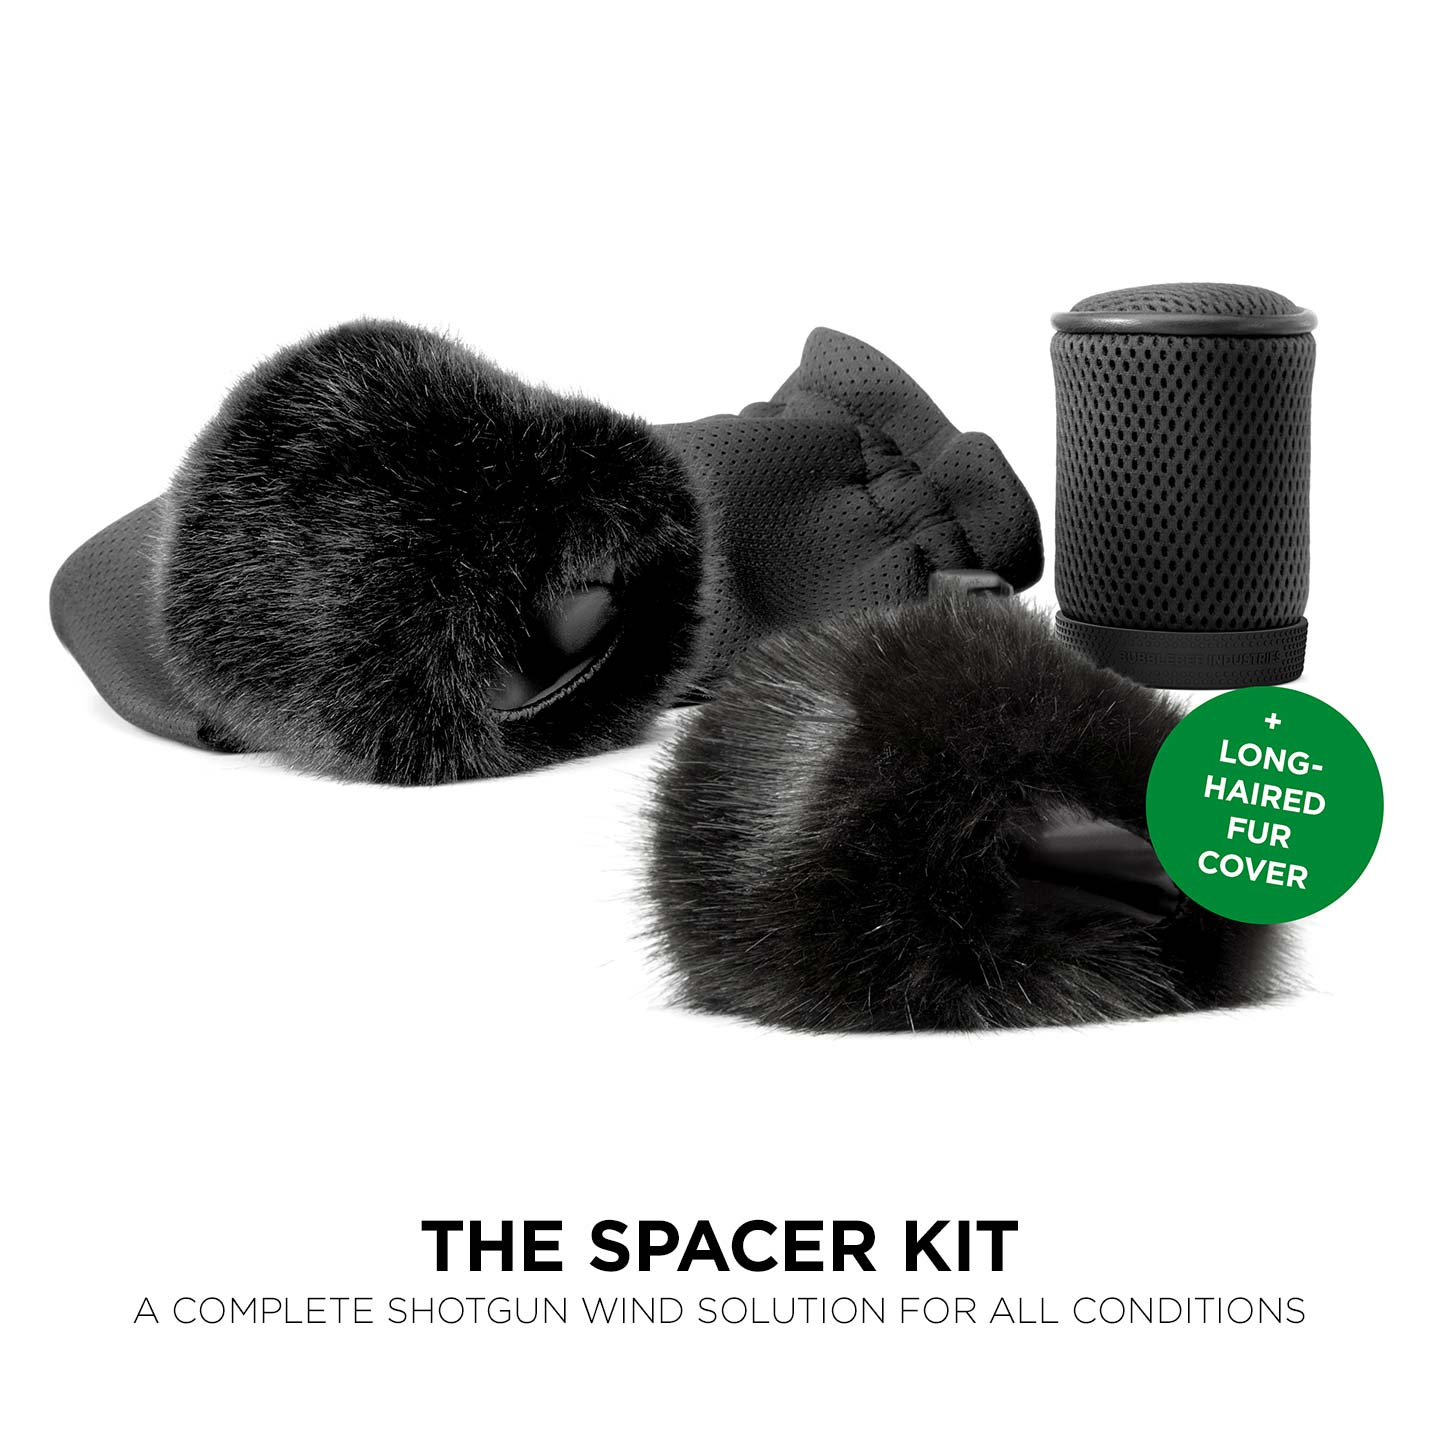 The Spacer Kit